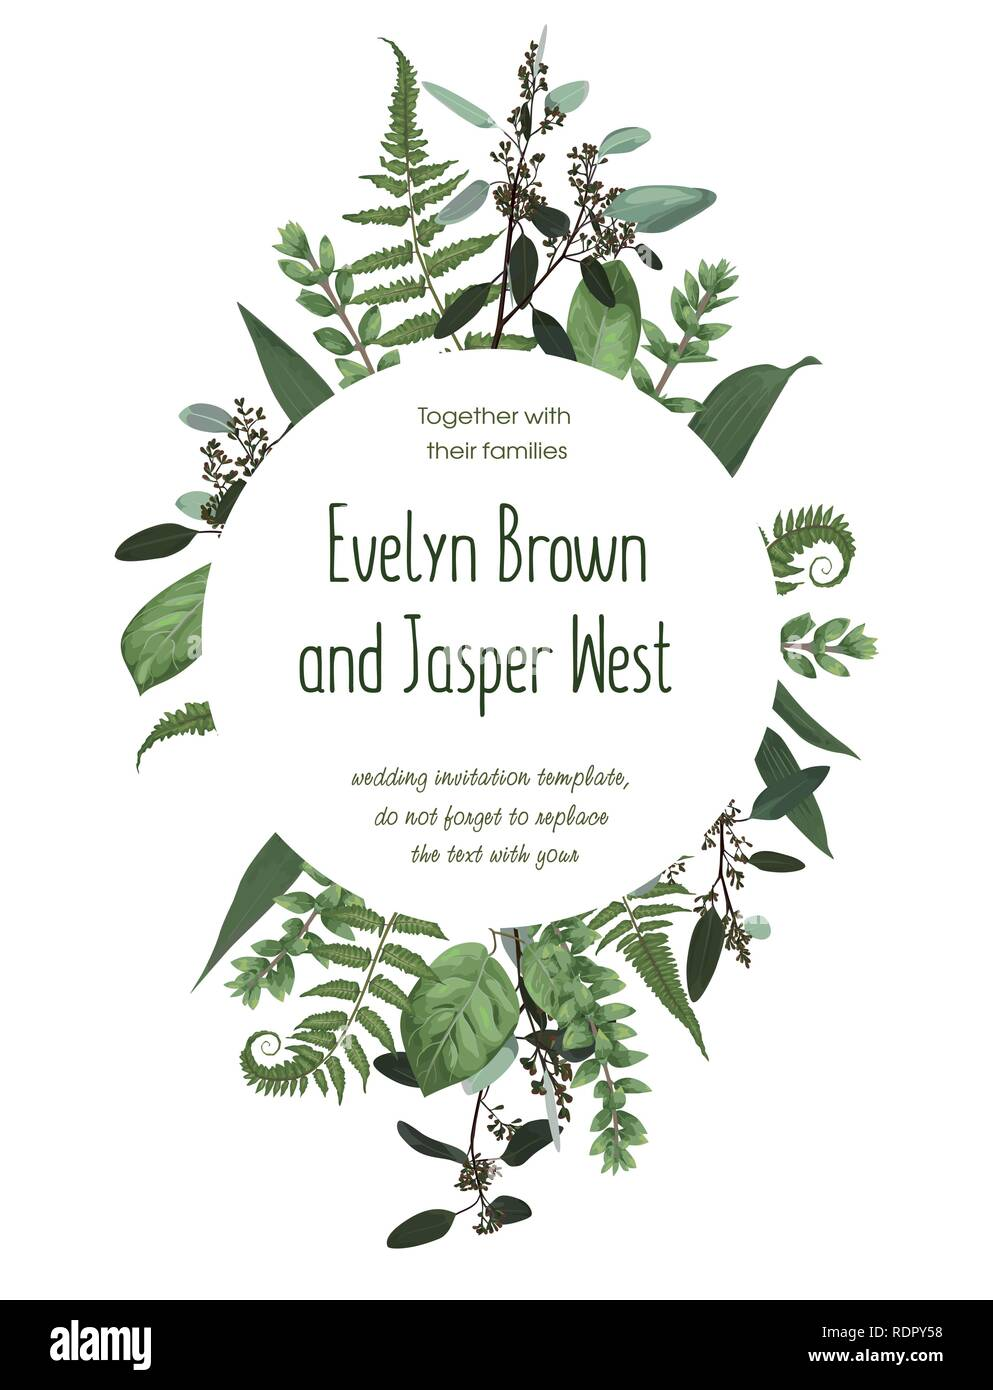 Wedding floral invitation, invite card. Vector watercolorgreen forest leaf, fern, branches boxwood, buxus, eucalyptus. Natura, botanical green decorat - Stock Image